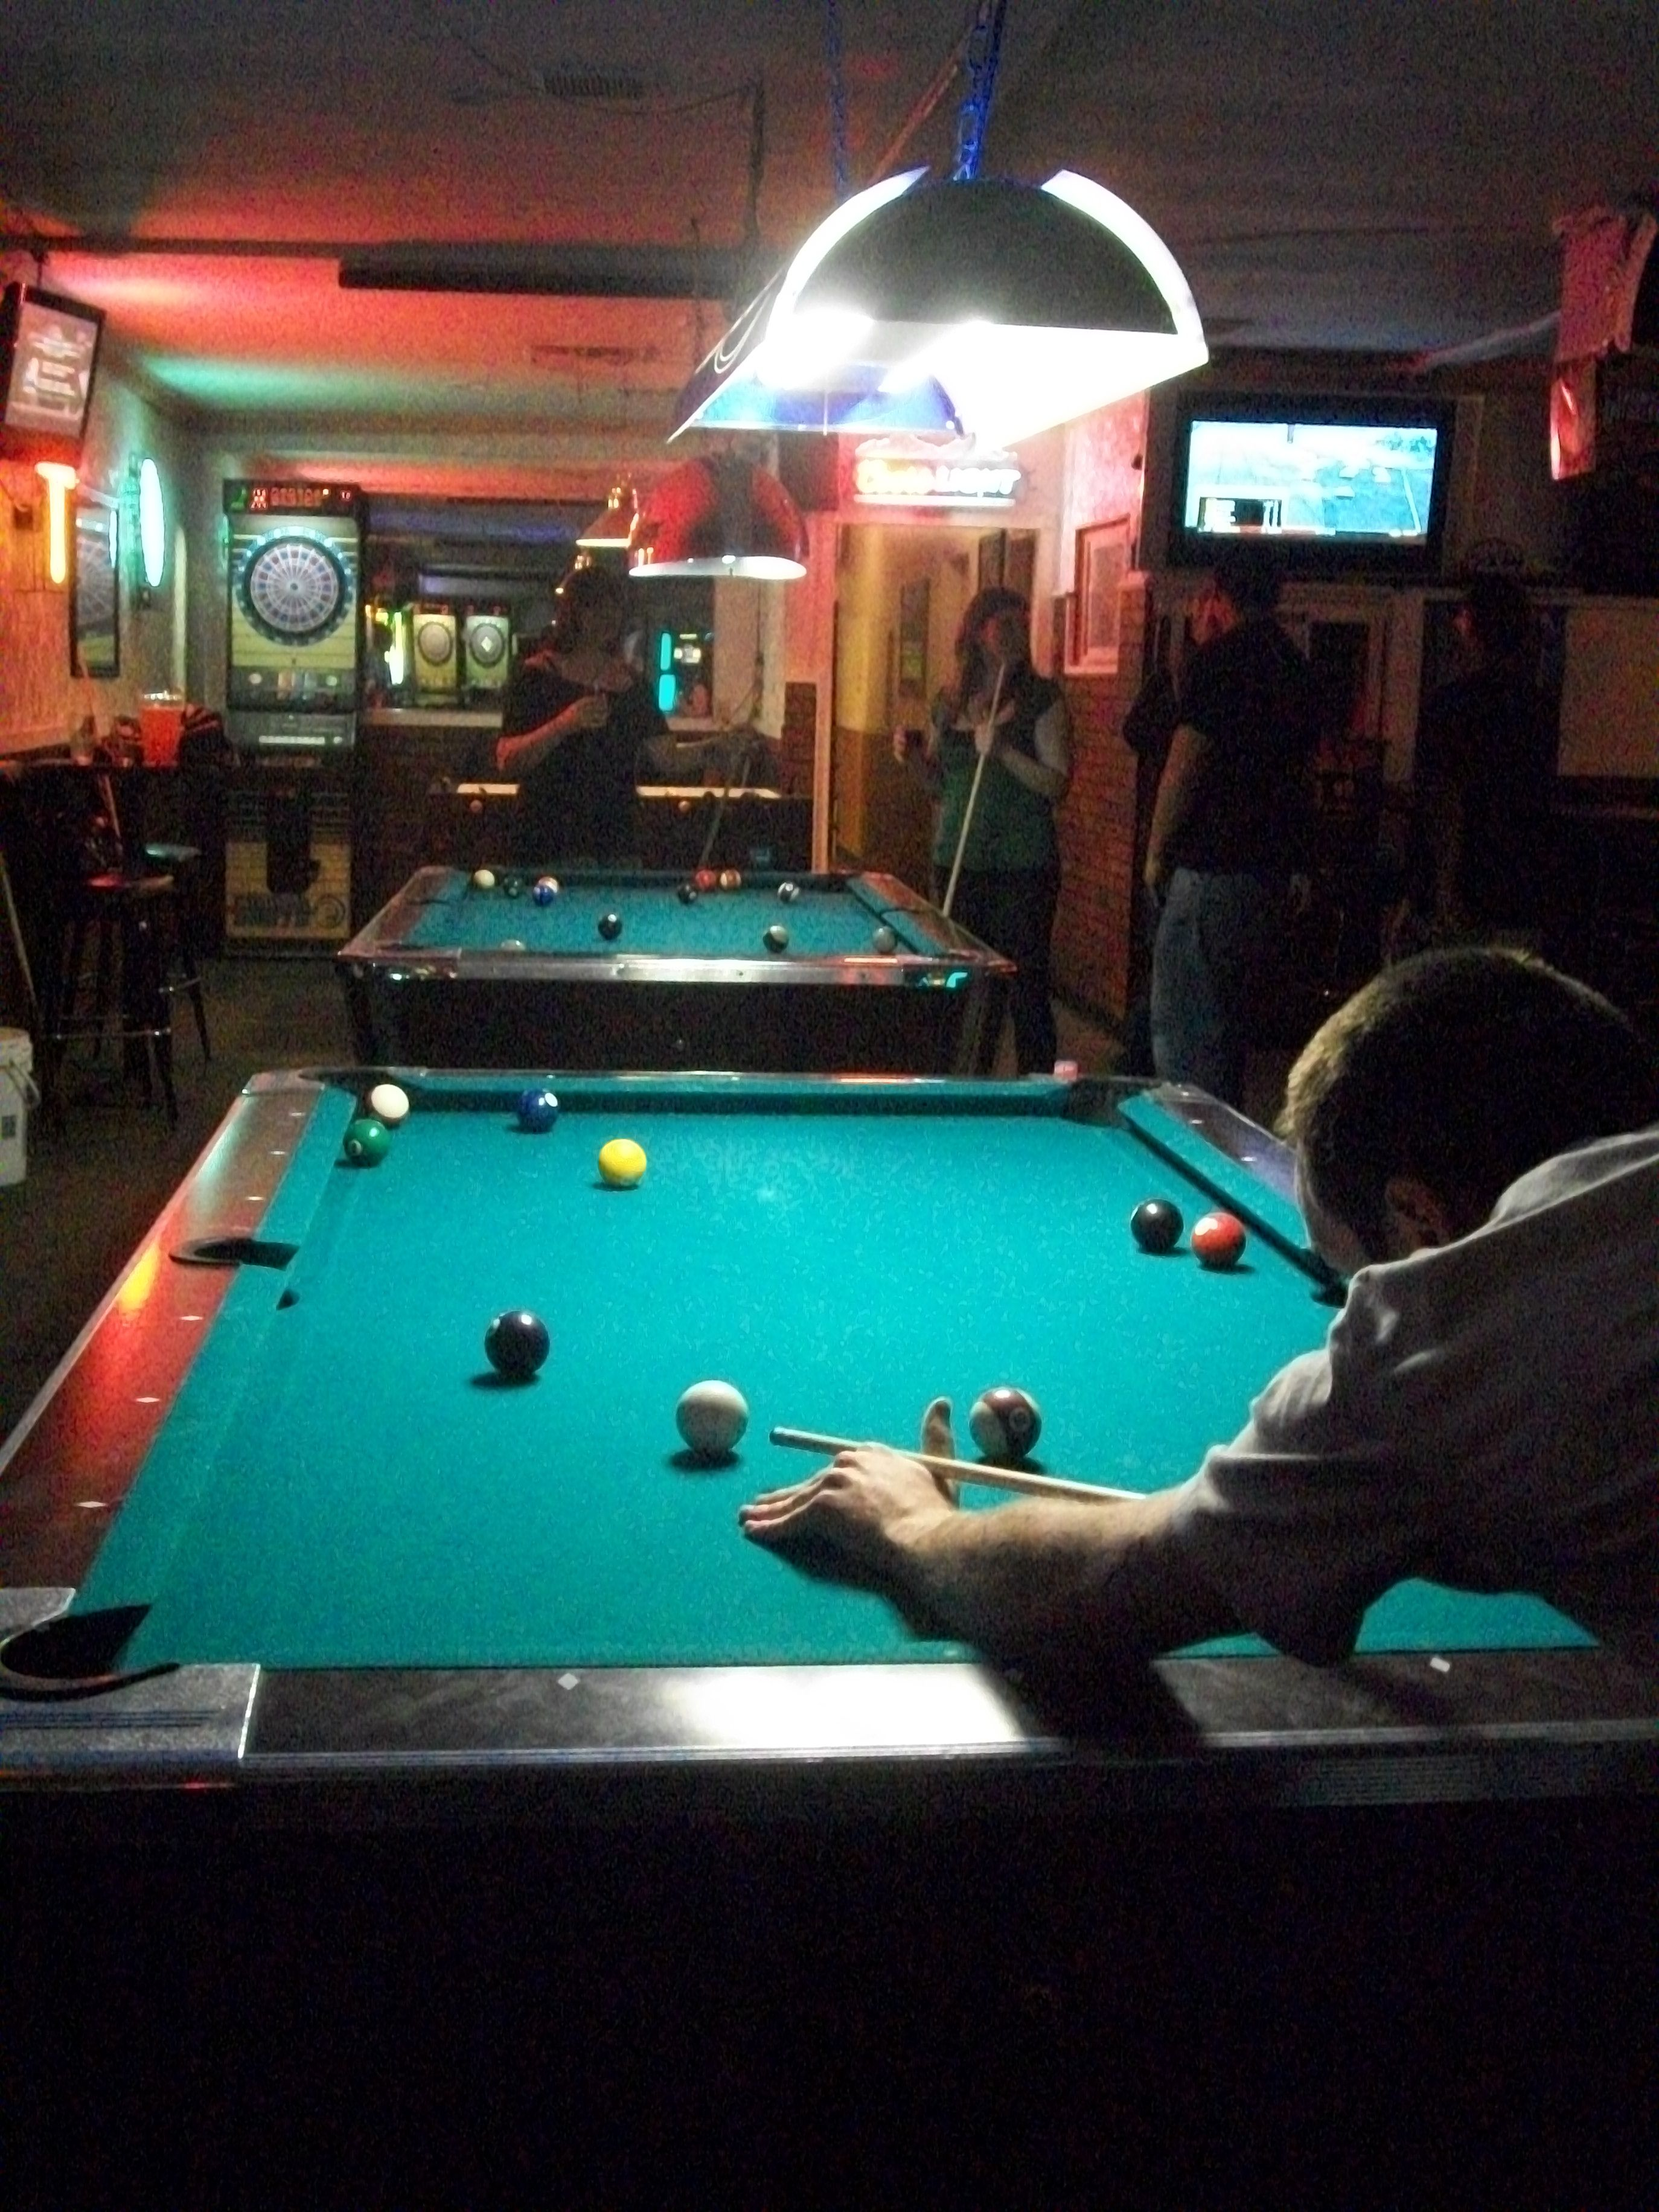 The Pool Hall, The Only Place The World Seems To Make Sense.